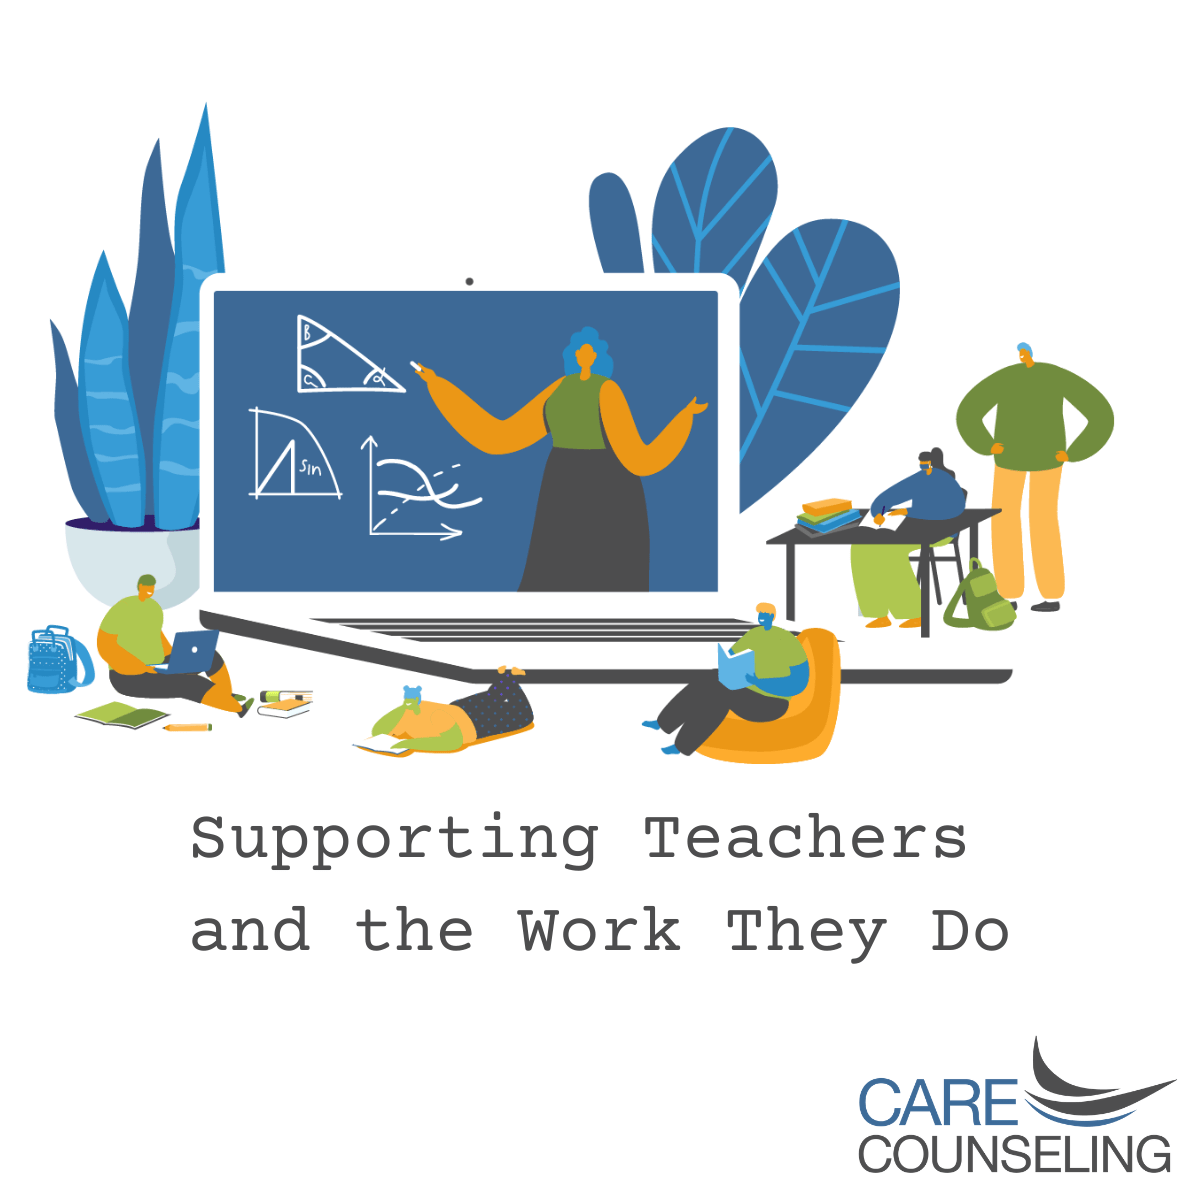 Supporting Teachers and the Work They Do